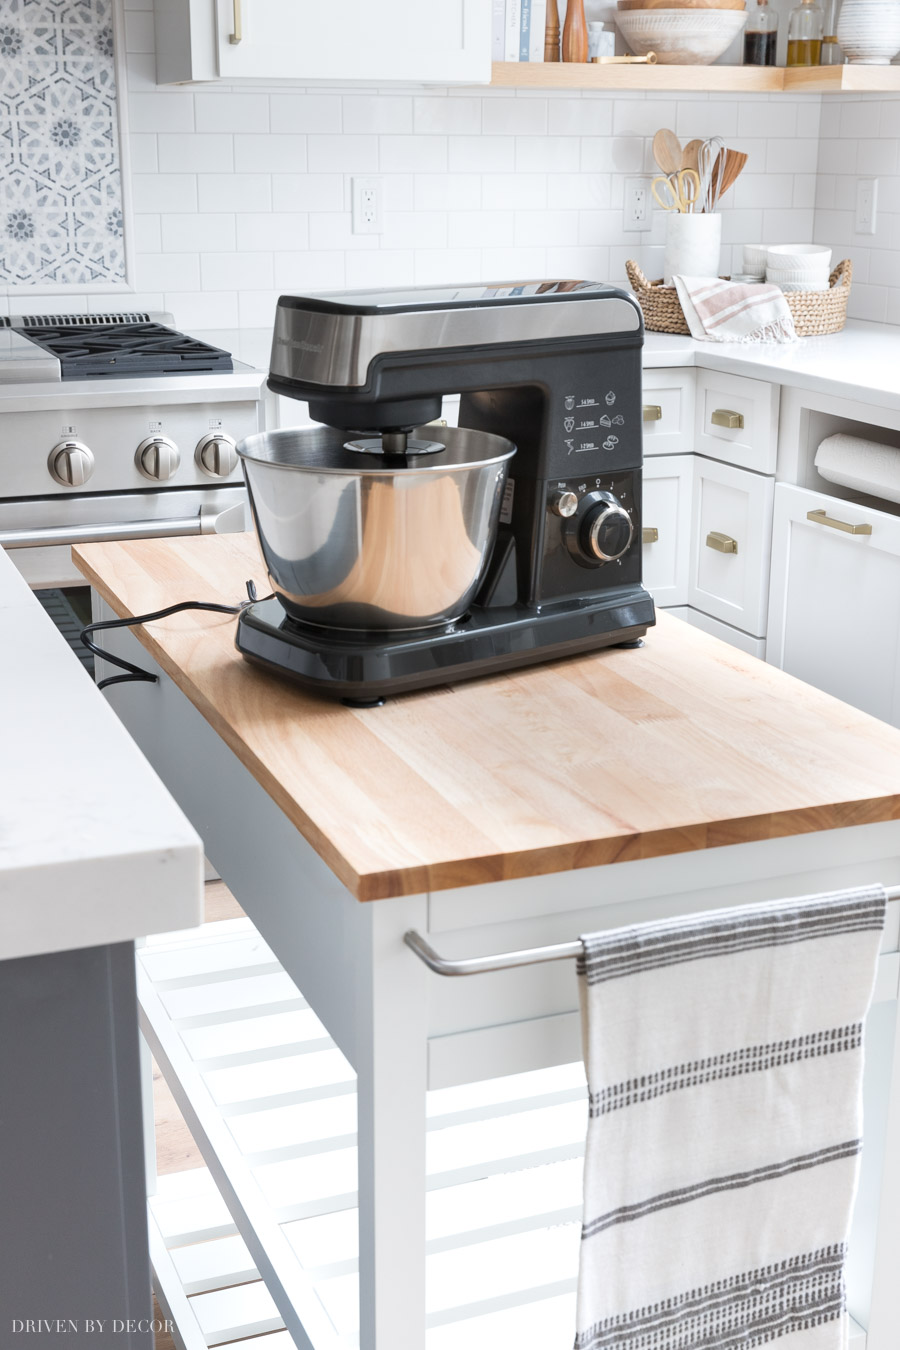 A stand mixer that I like just as much as a KitchenAid but is so much cheaper!